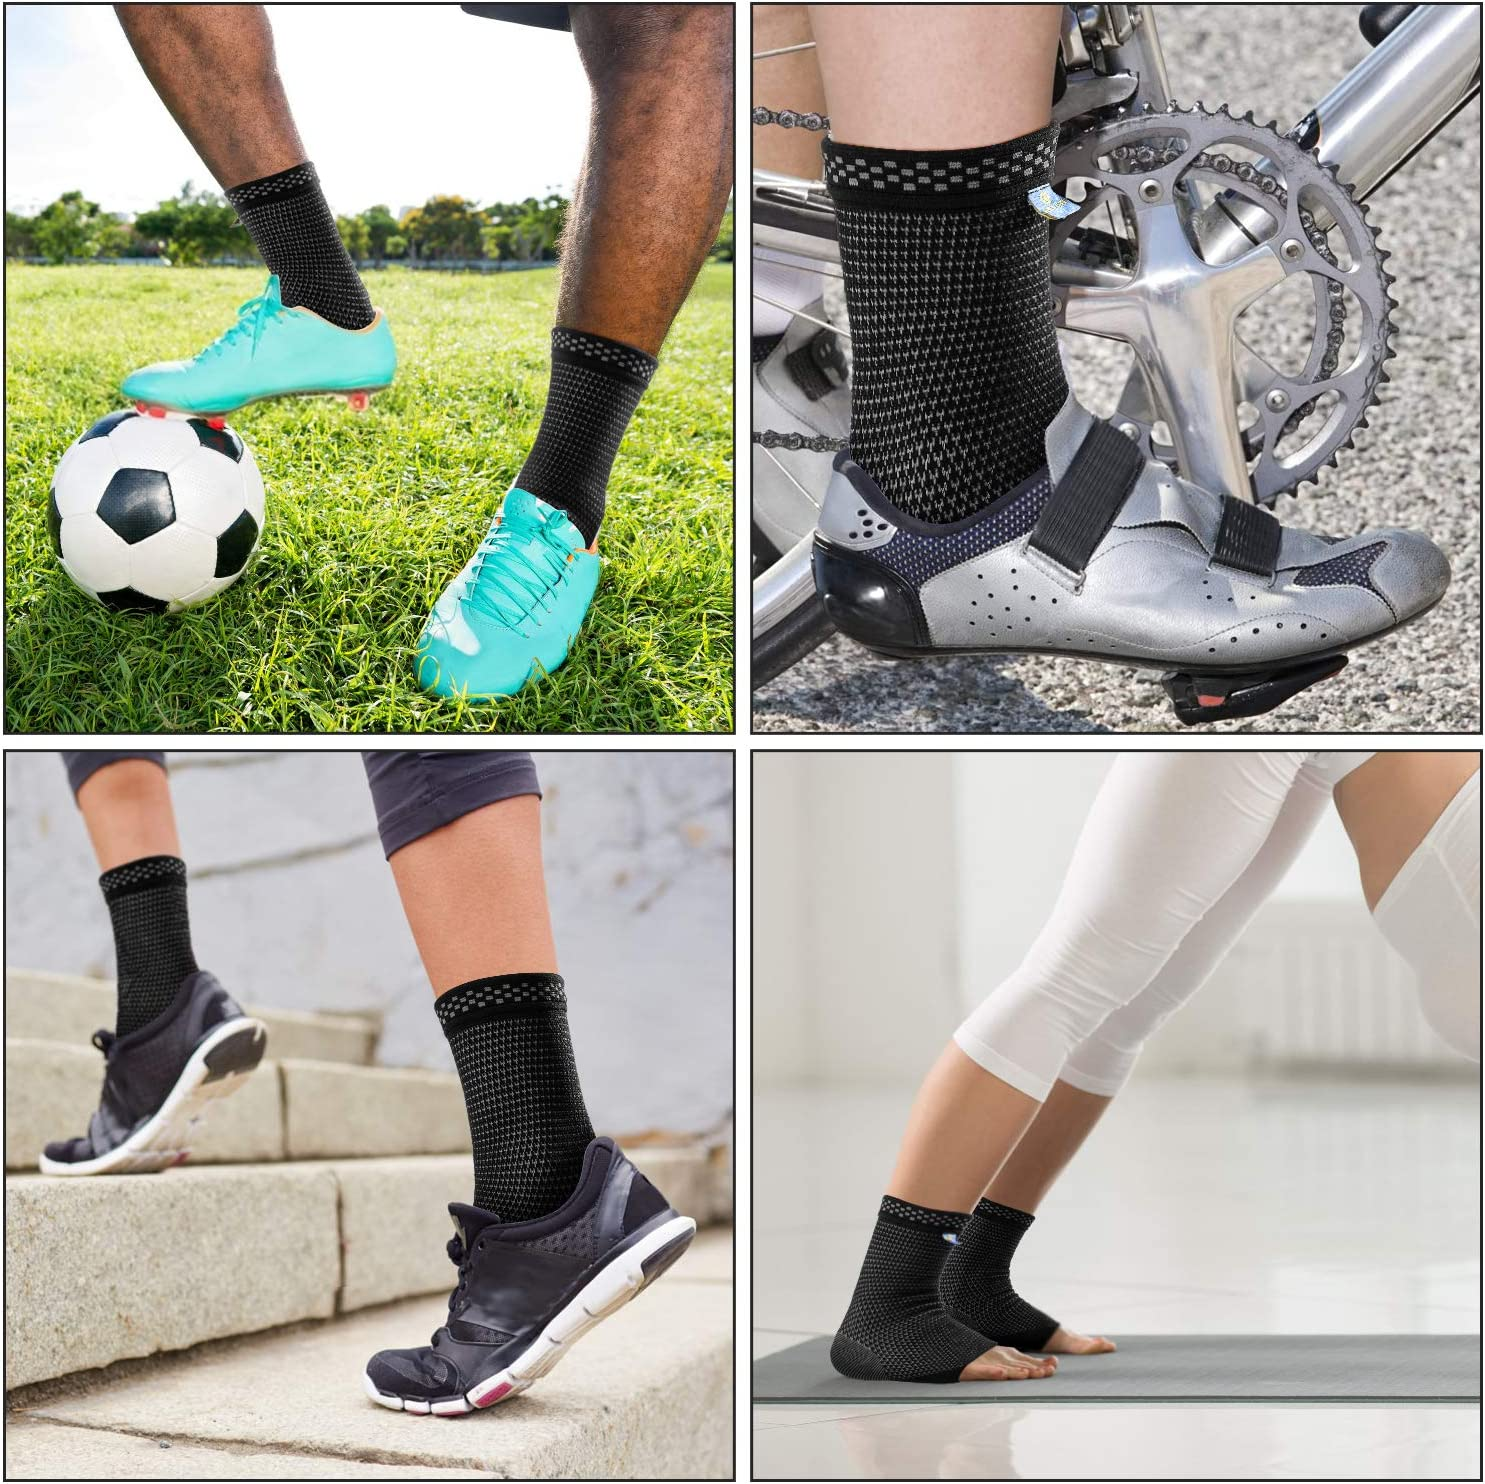 New Medical Compression Technology Ankle Sleeve Socks for Plantar Fasciitis Pain Relief and Achilles Tendonitis Treatment.Foot Support for Reduce Swelling Recovery Ankle Pain,Ankle Brace for Men/&Women